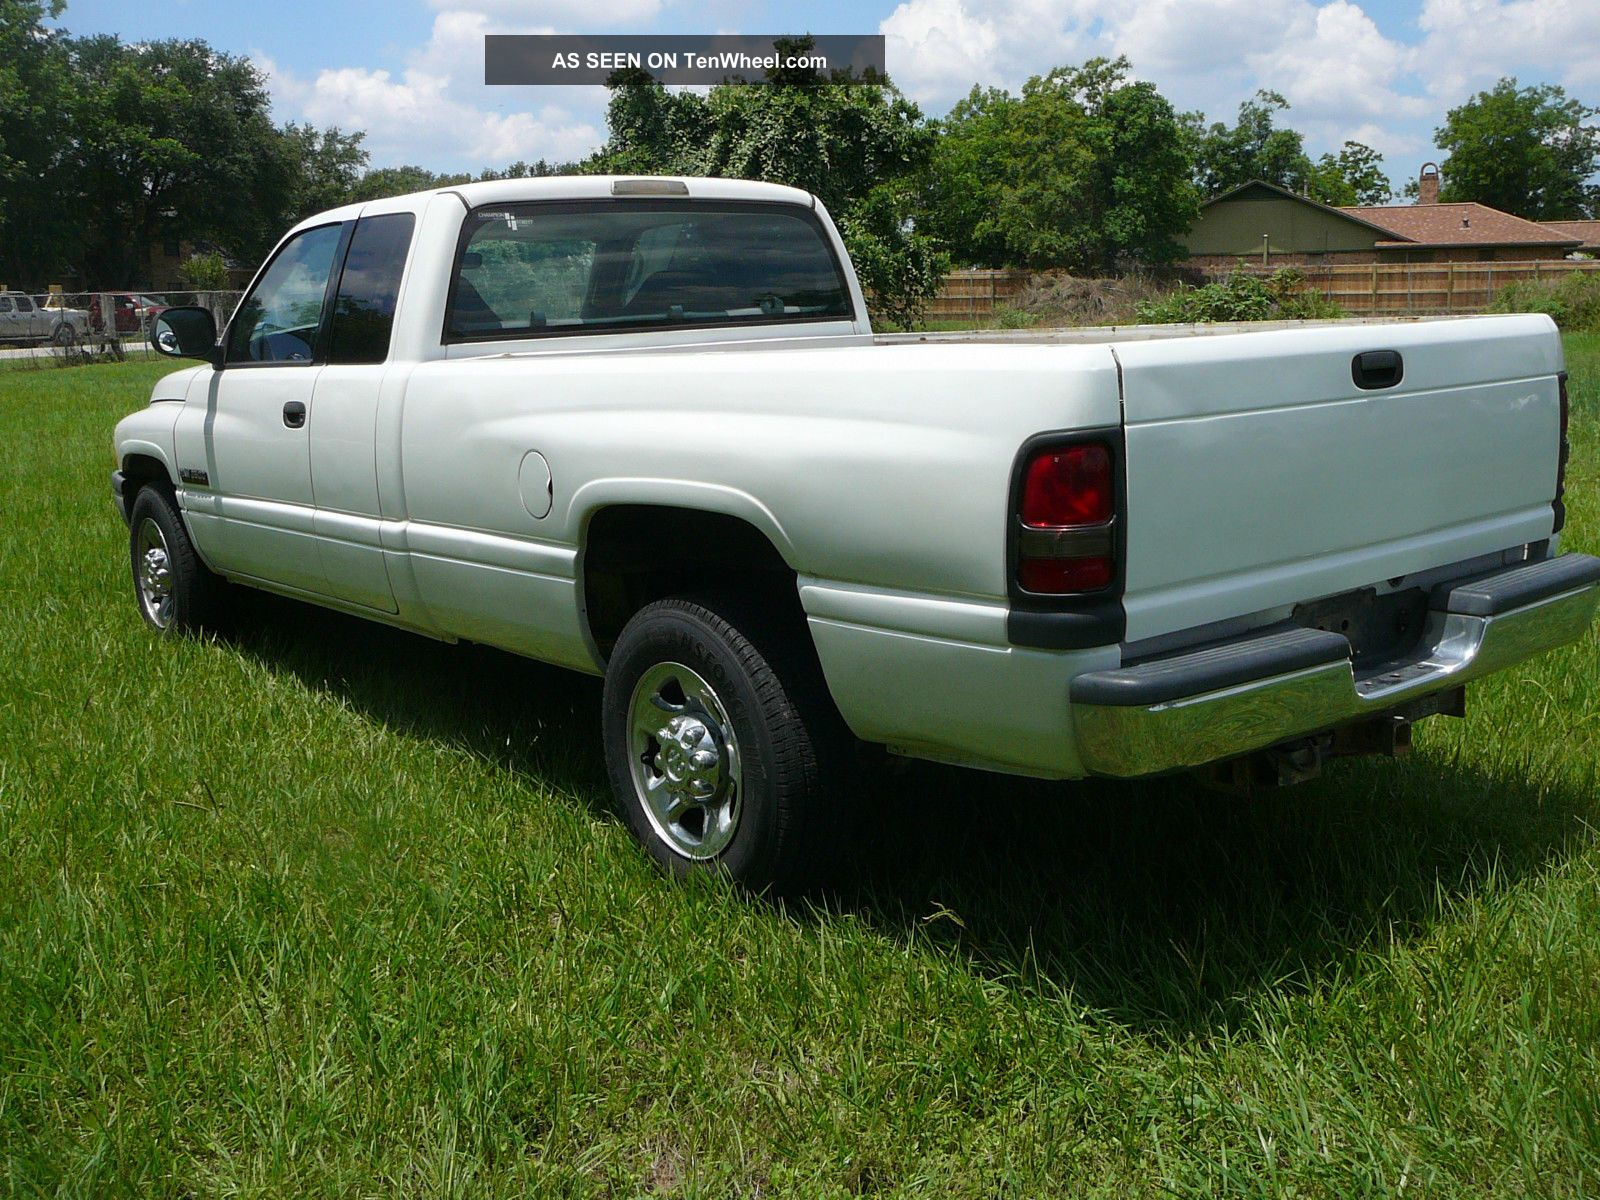 2002 dodge ram 2500 diesel extended cab. Black Bedroom Furniture Sets. Home Design Ideas